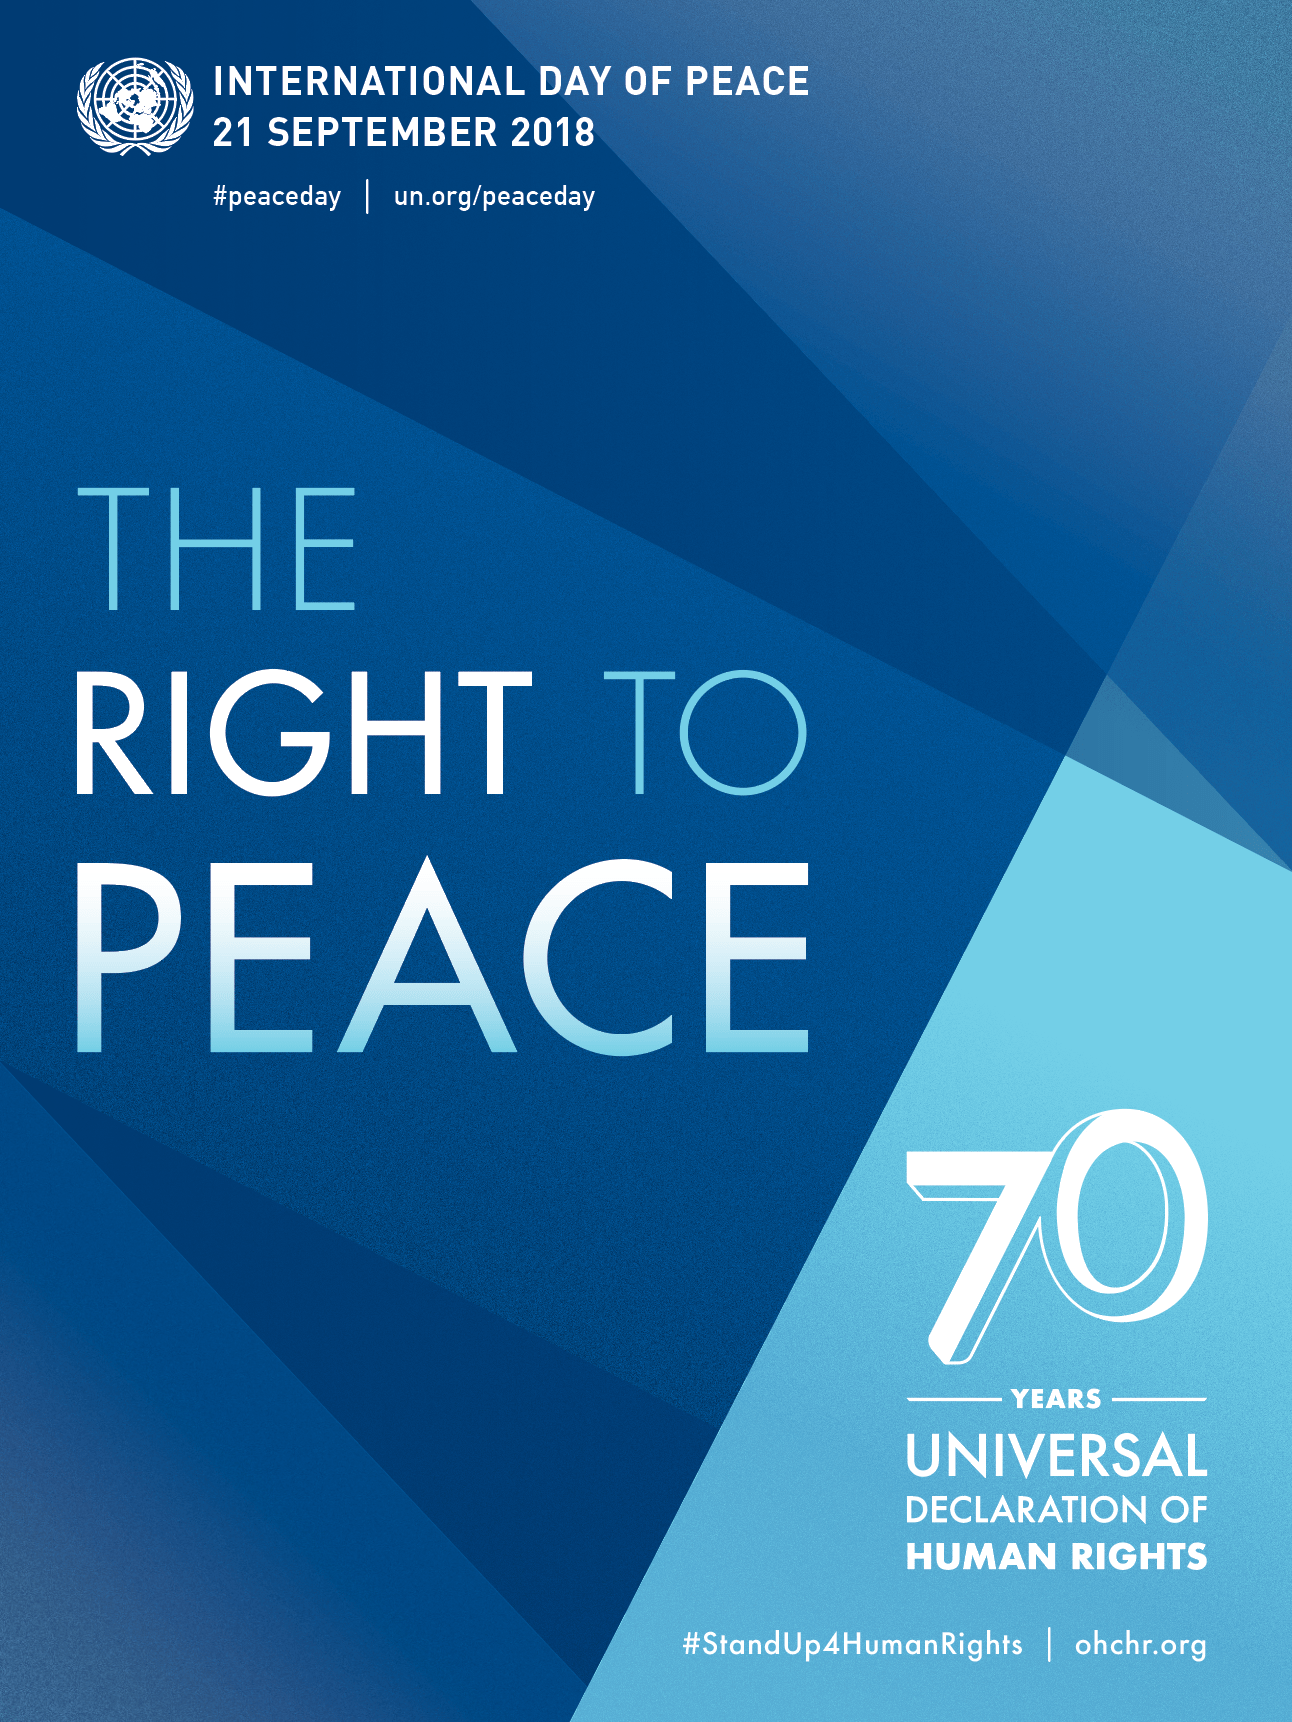 The right to peace poster.